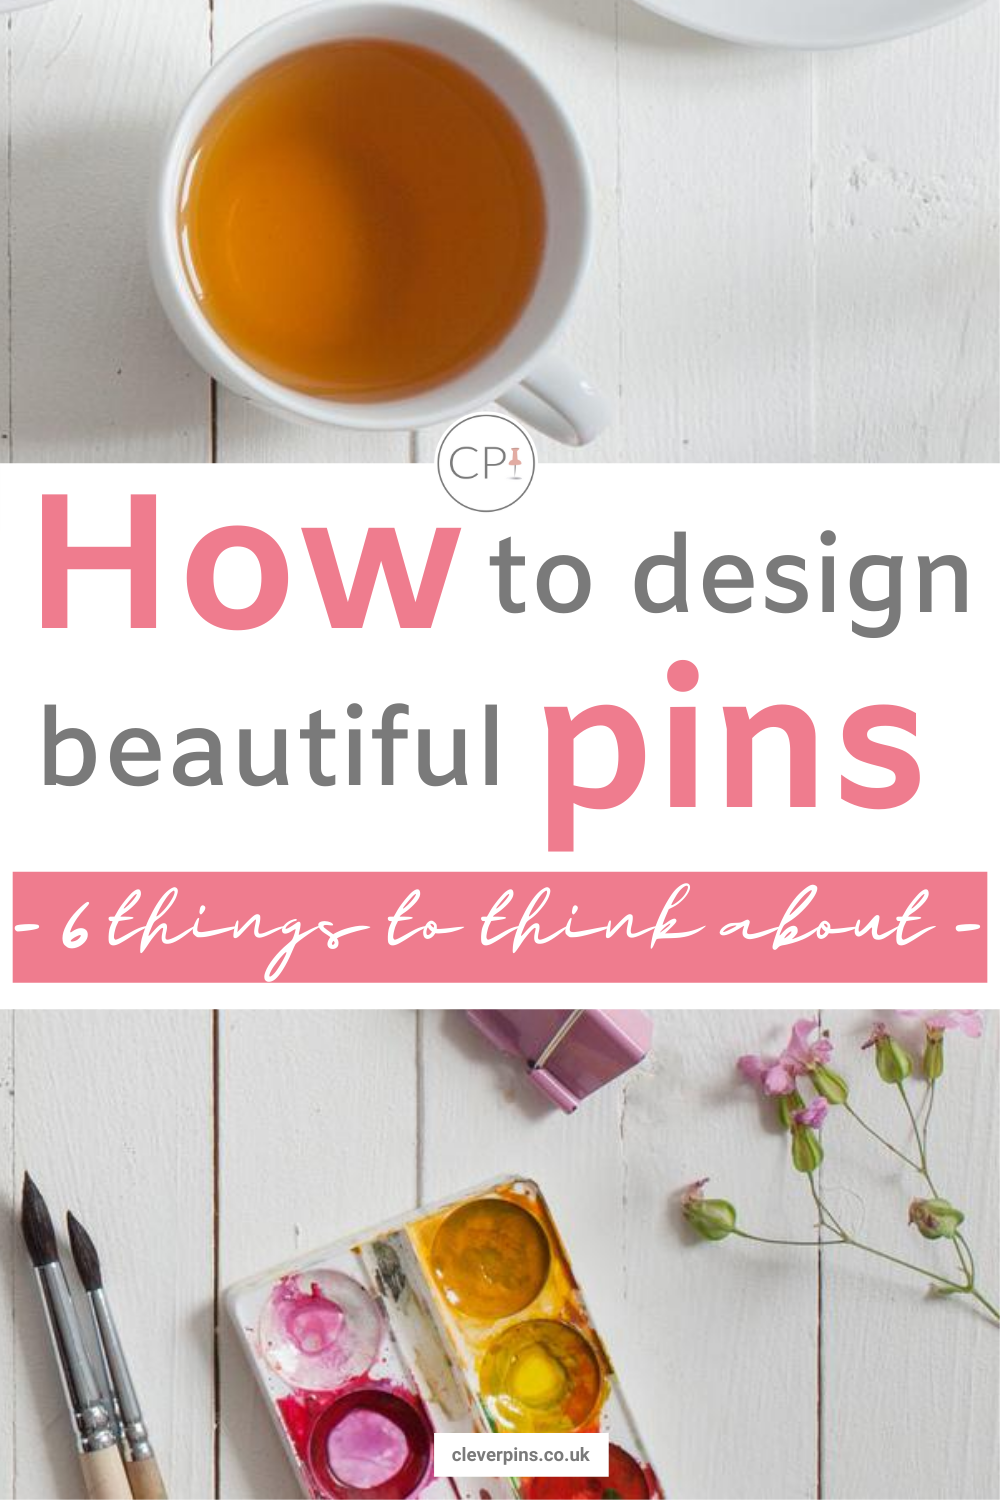 How to design beautiful pins